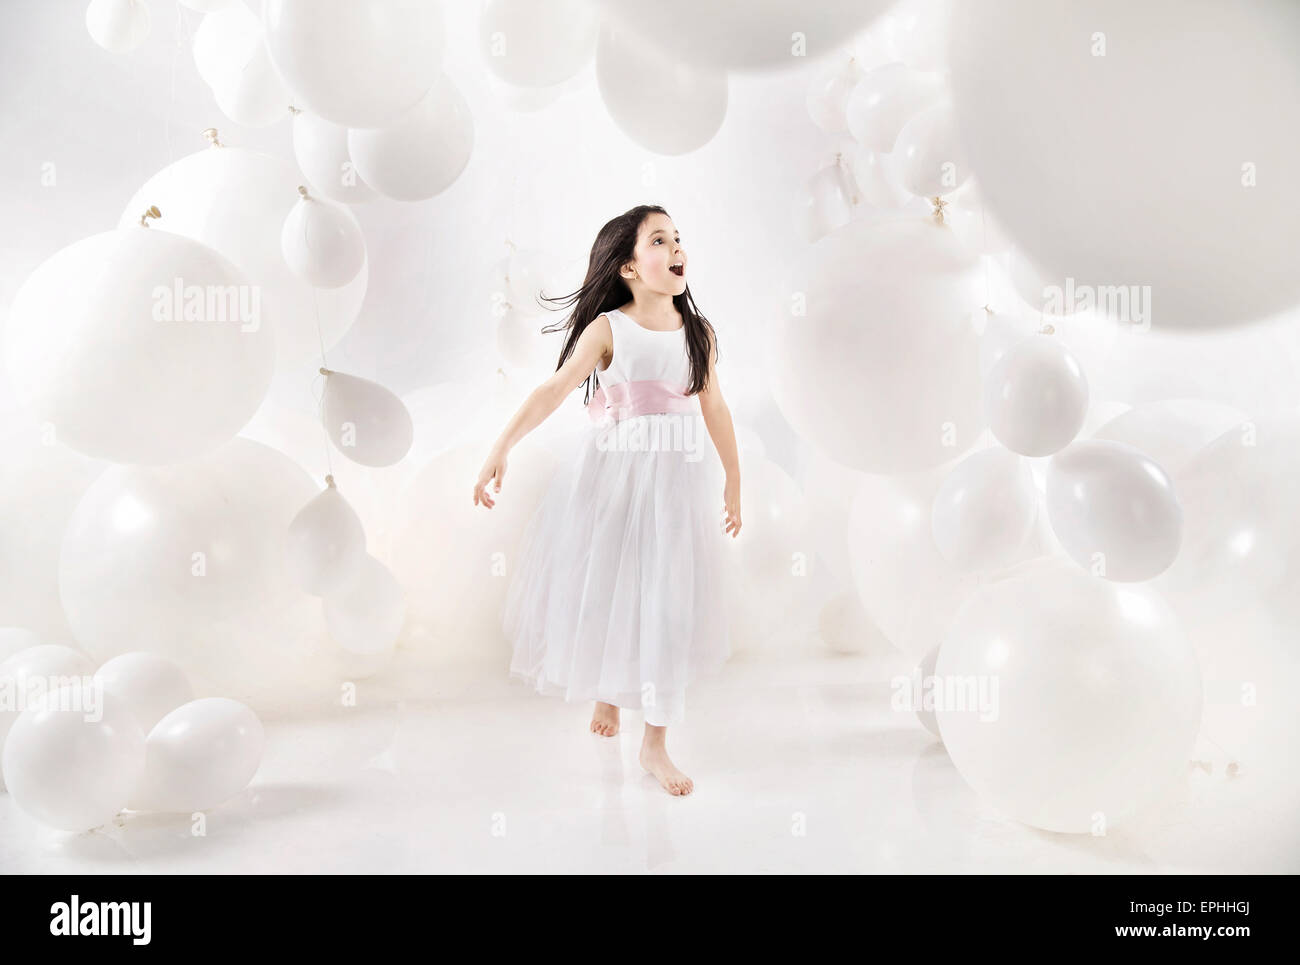 Delighted kid among numerous balloons - Stock Image